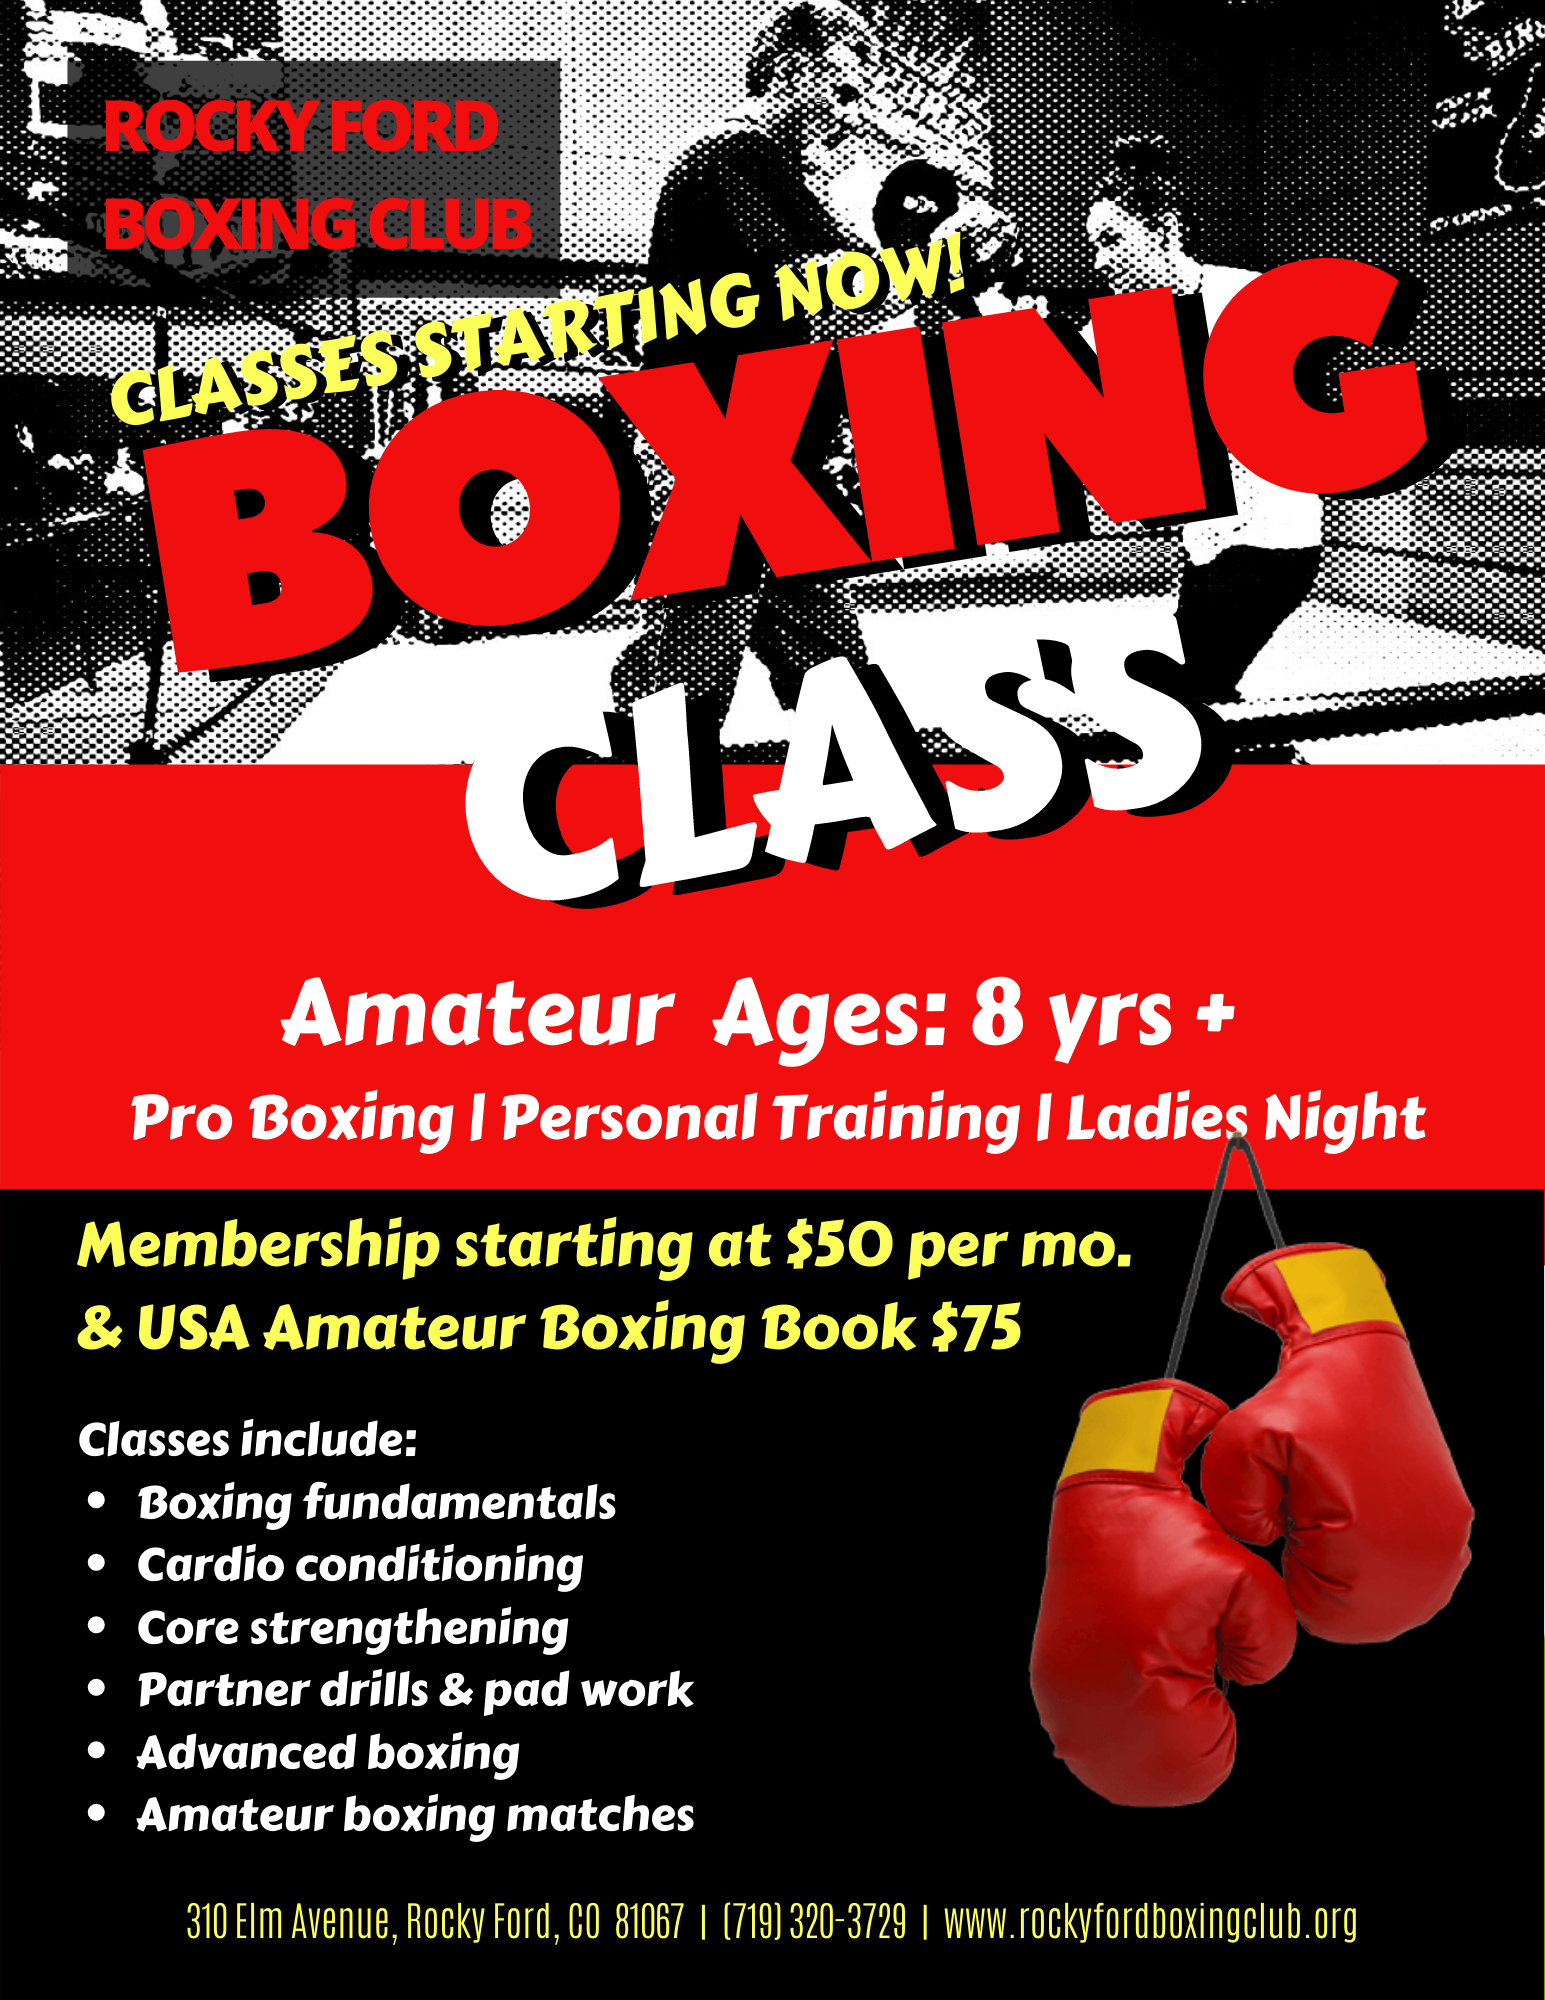 Rocky Ford Boxing Club